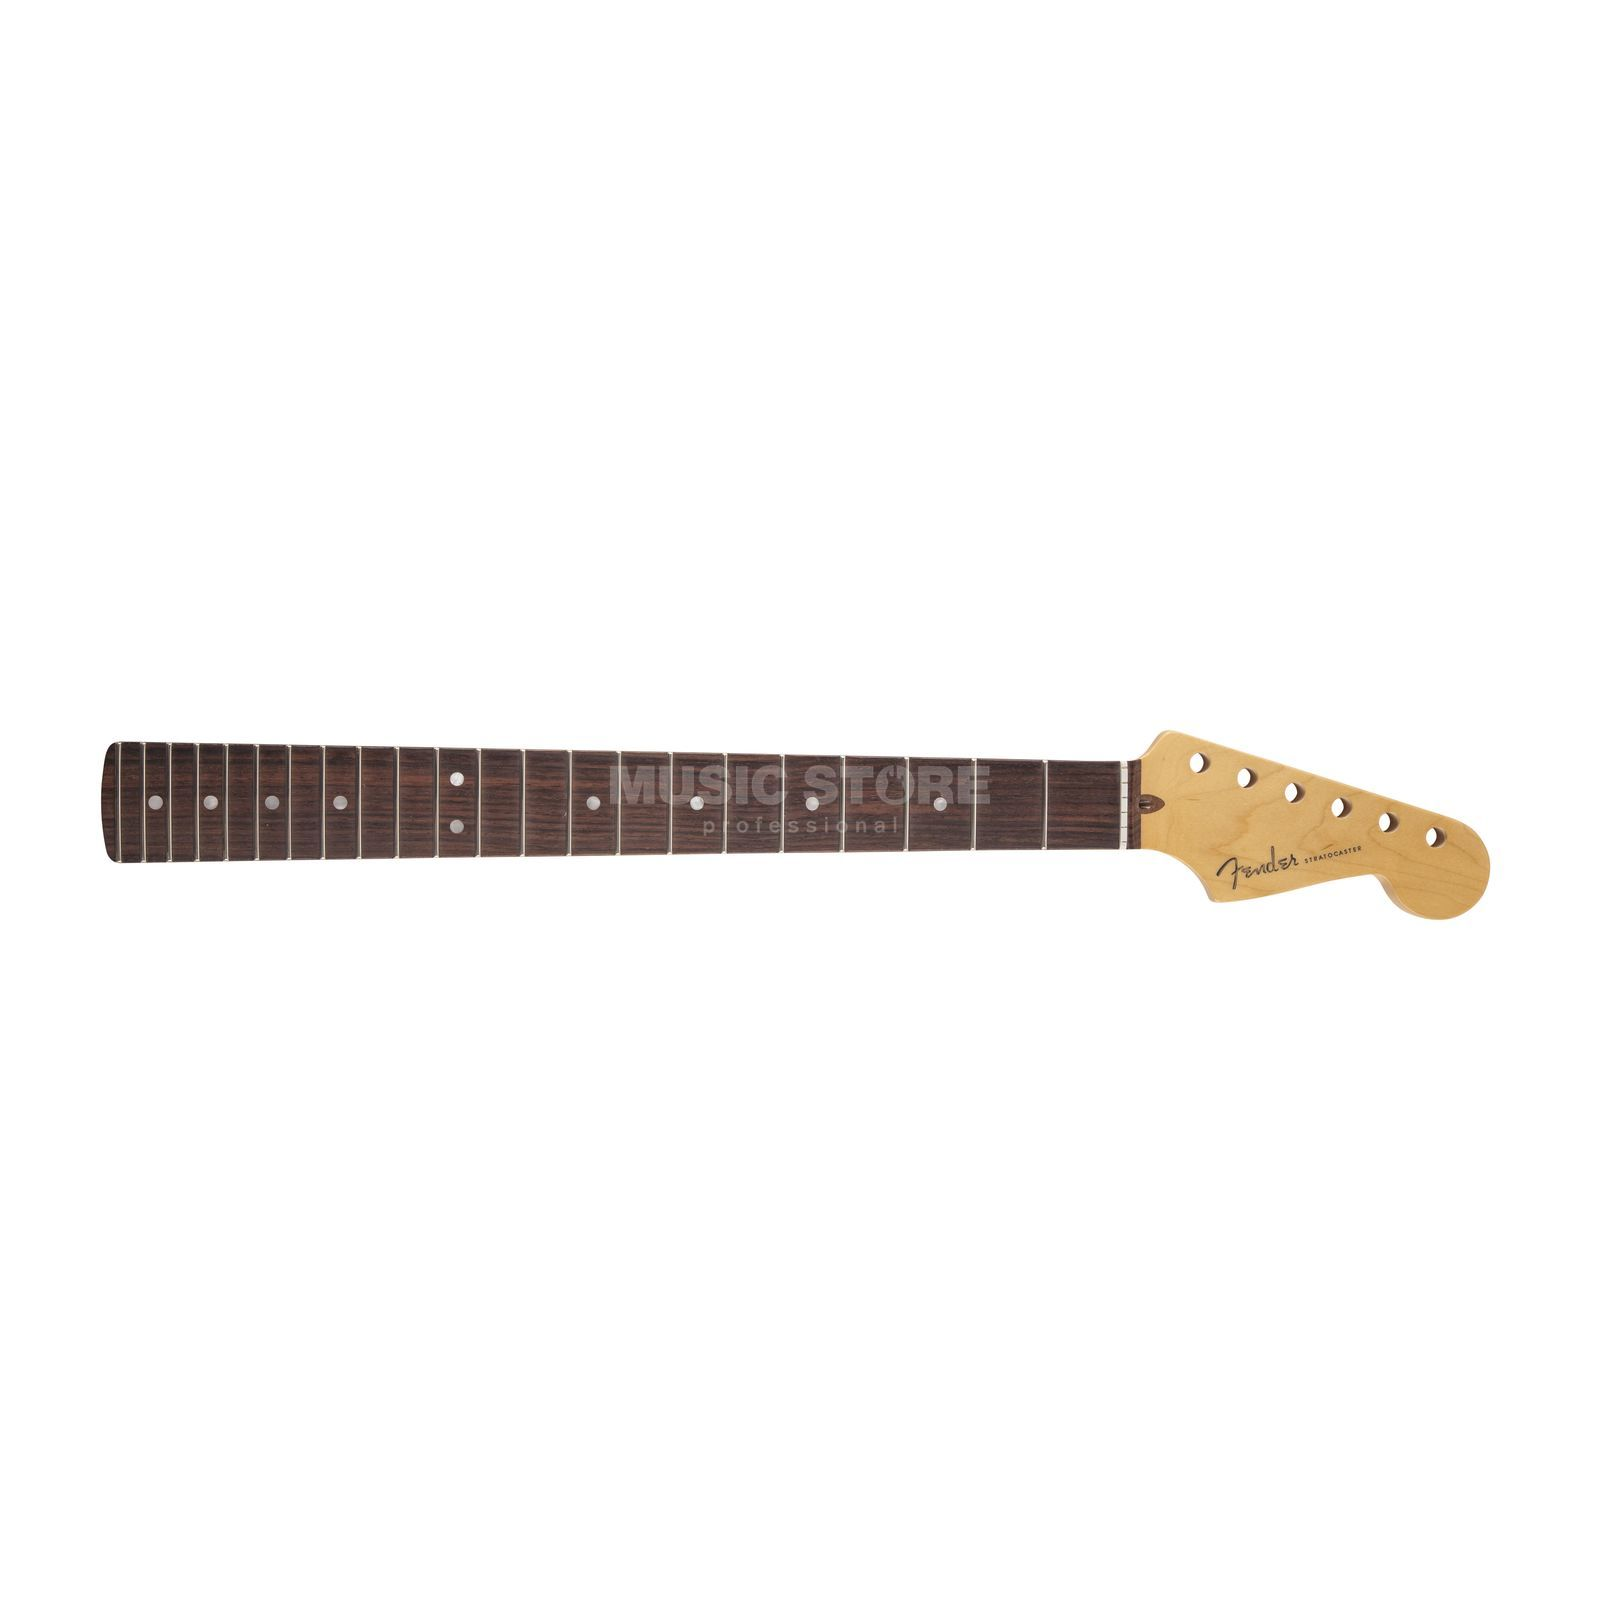 Fender USA Strat Neck 22 Frets RW Compound Radius Zdjęcie produktu